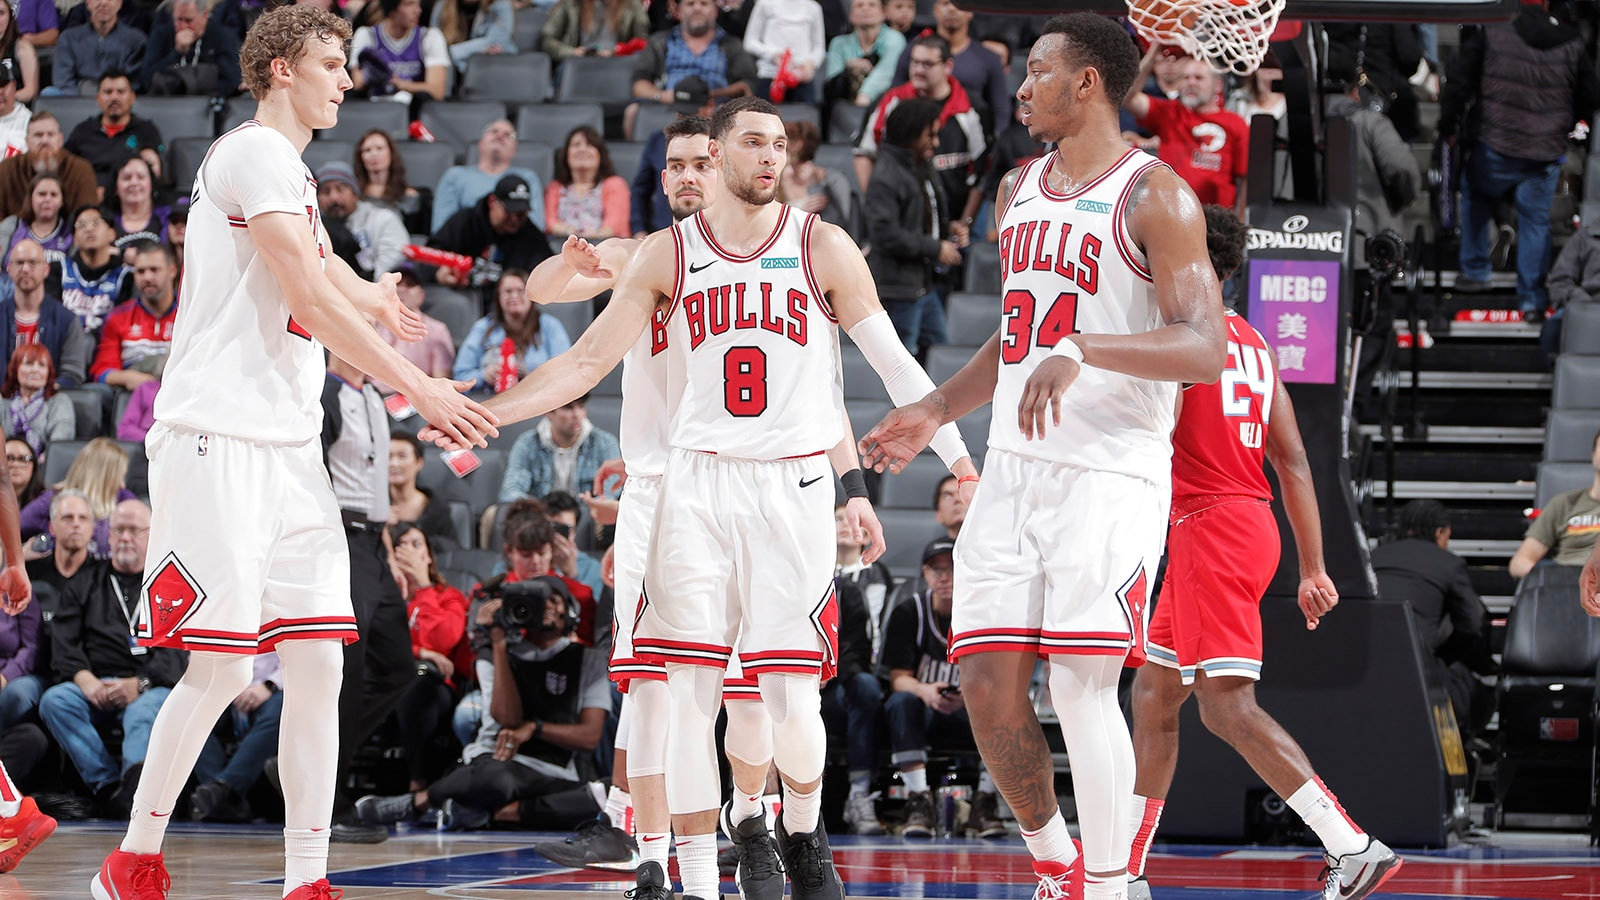 Zach LaVine high fiving teammates